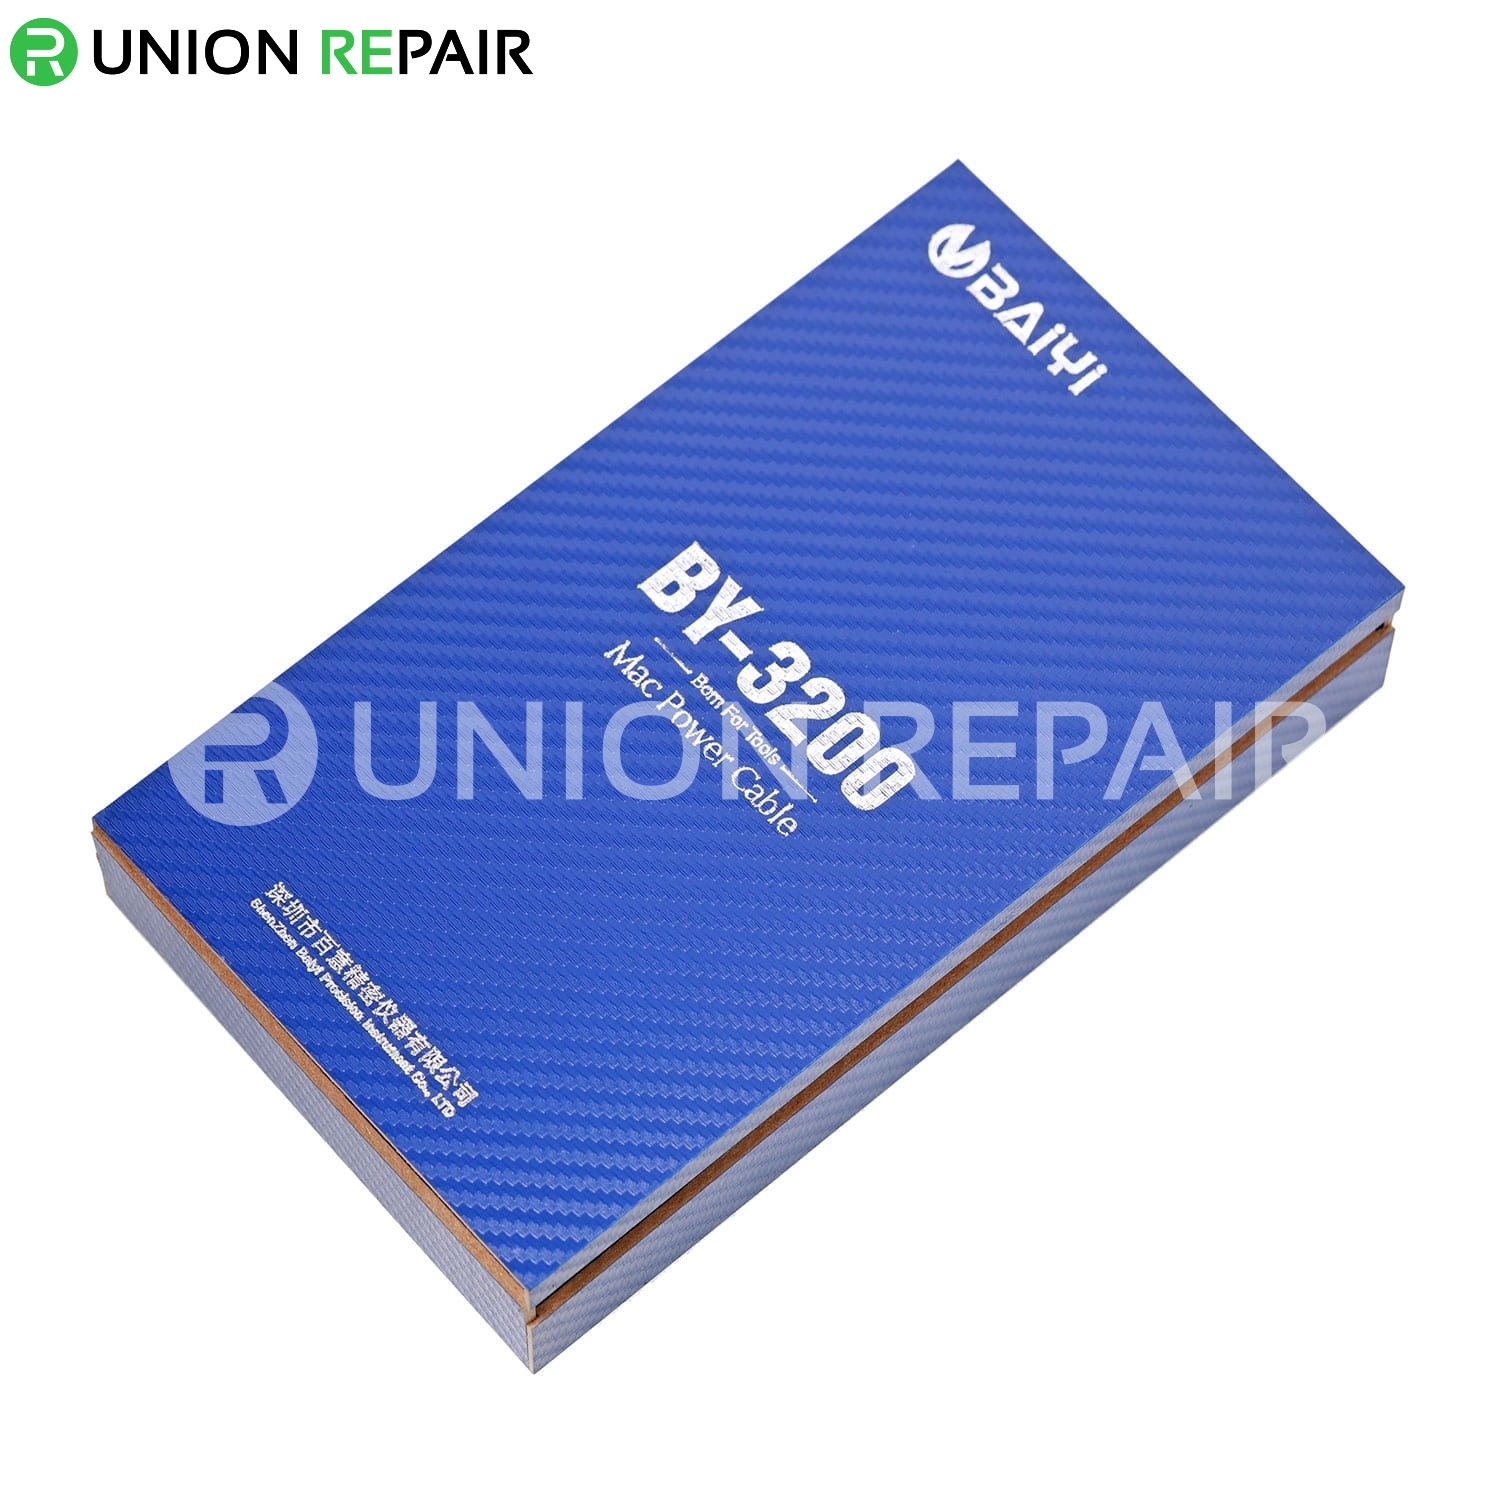 BY-3200 Boot Cable Tool Kit for Macbook Board Repair